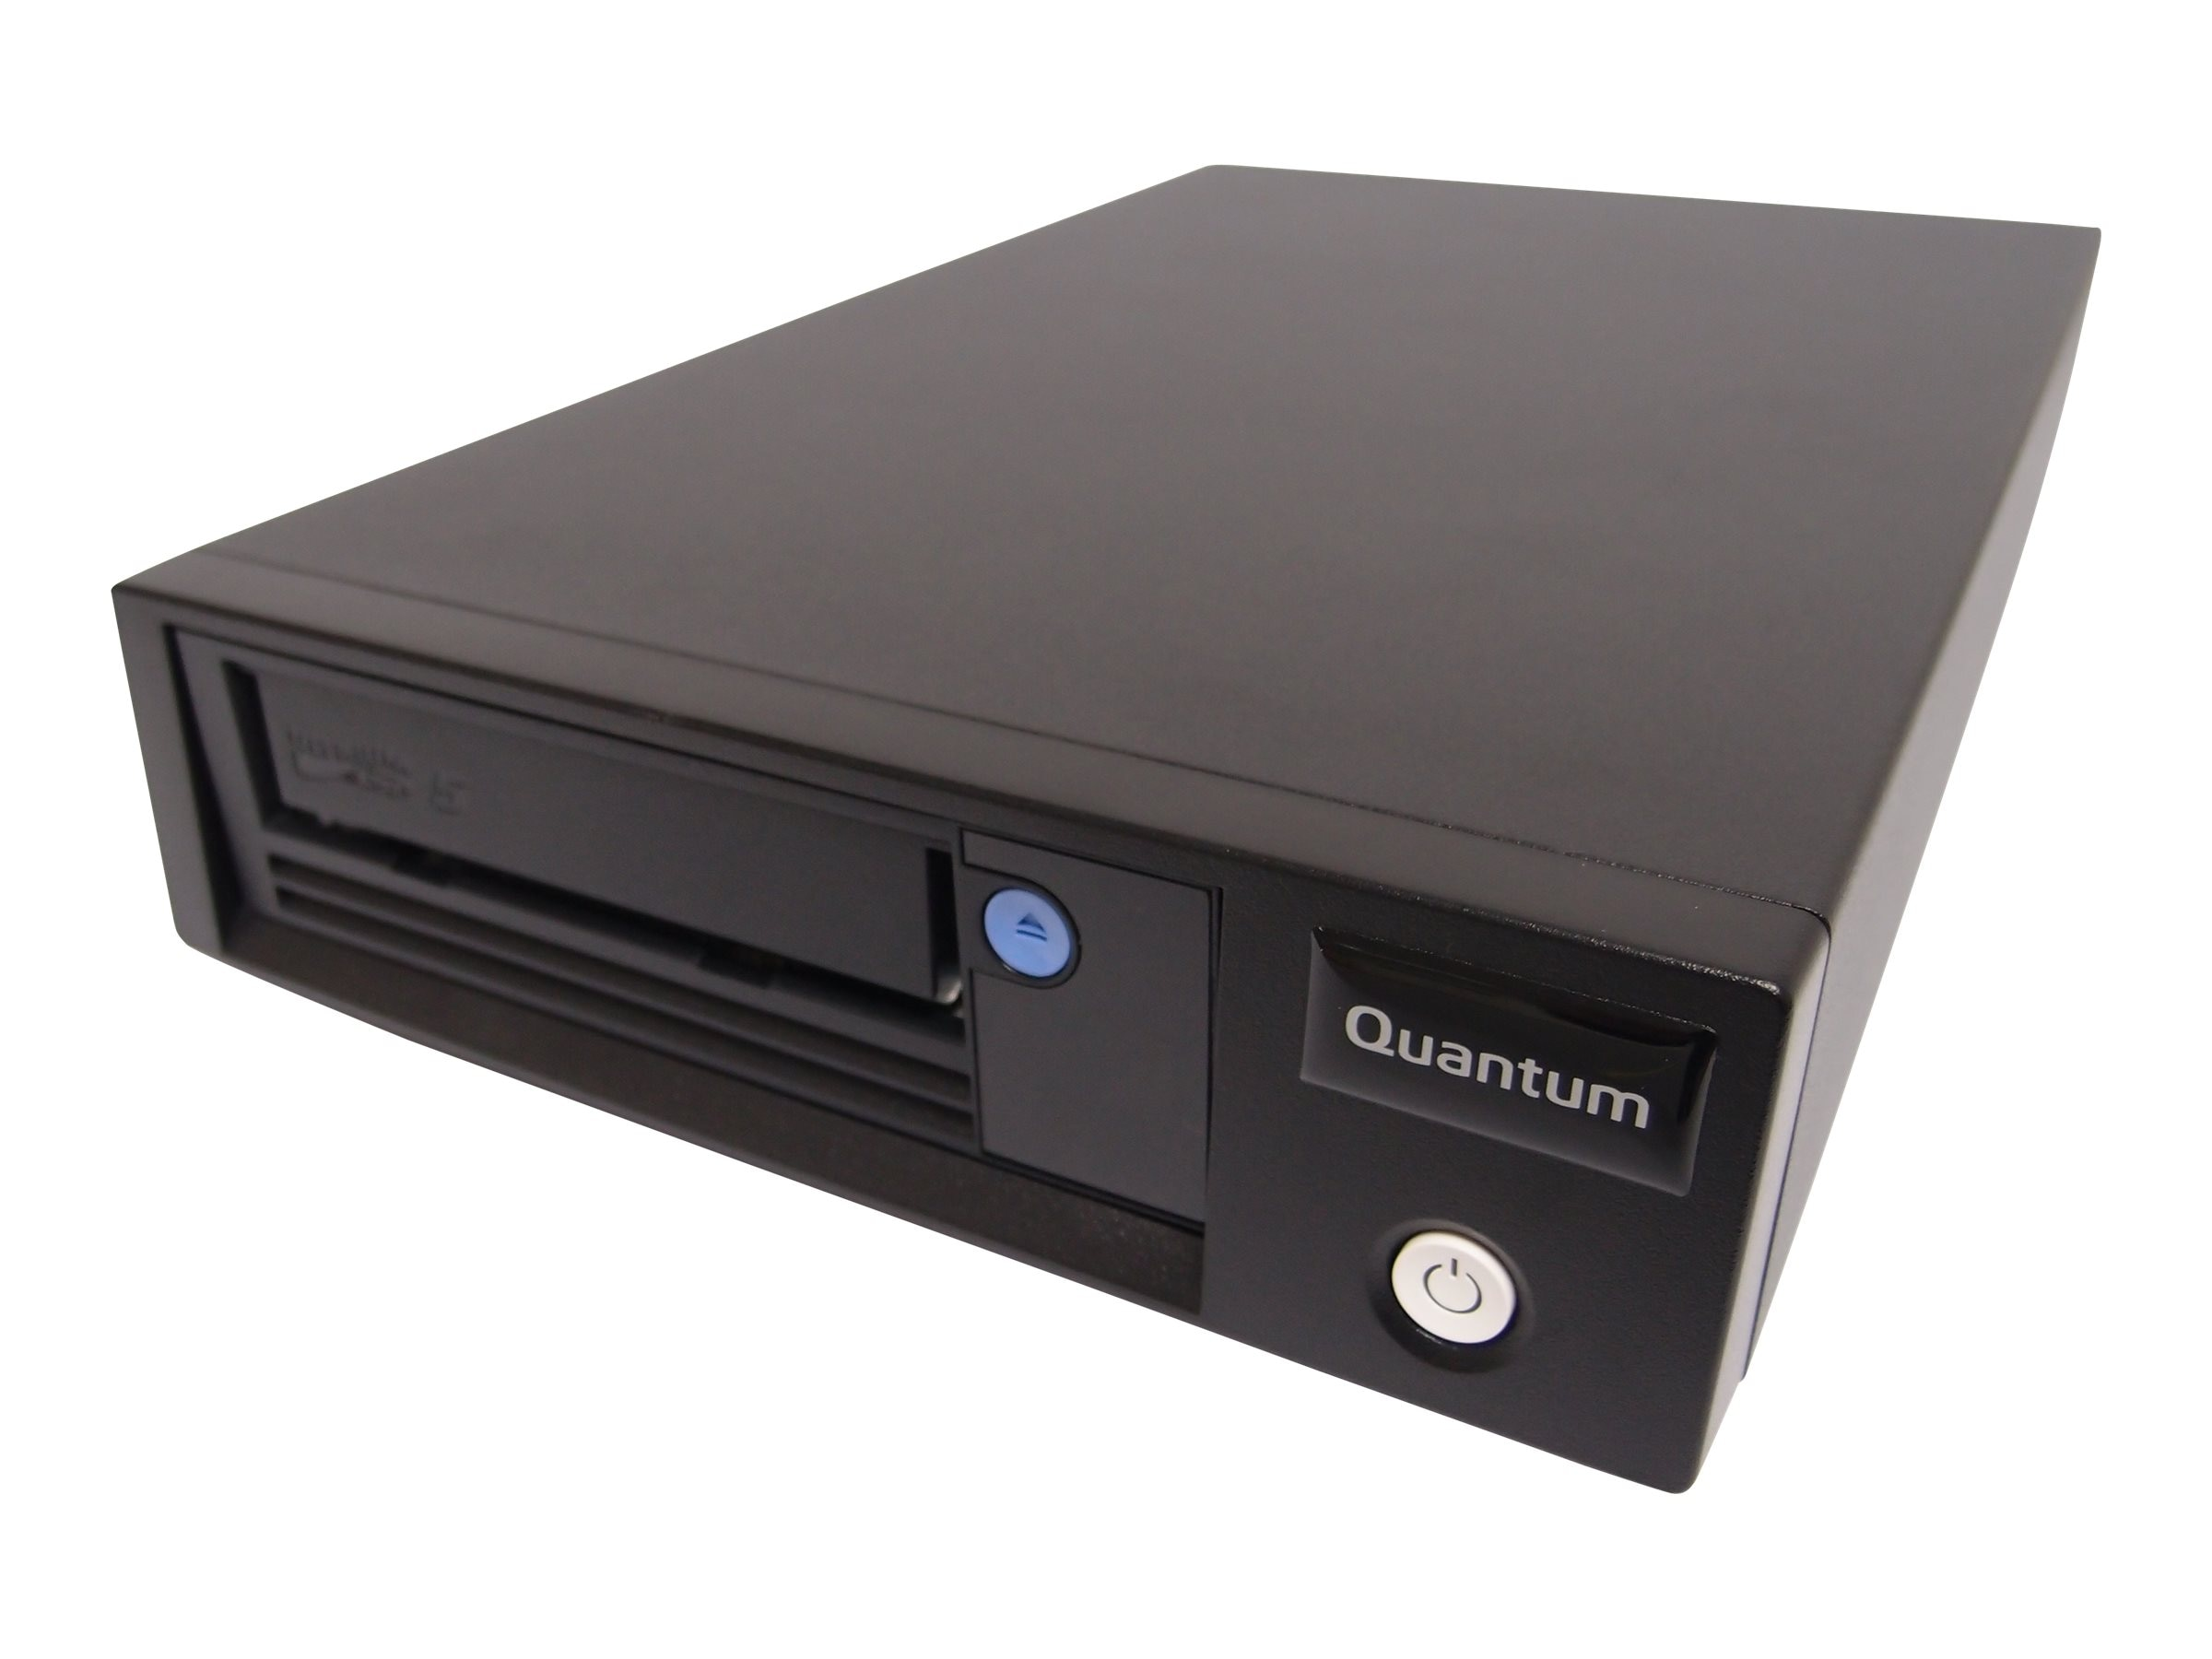 Quantum LTO-5 HH SAS 6Gb s Tabletop Model C Tape Drive - Black w  SAS HBA, TC-L52BN-EZ-C, 17350197, Tape Drives